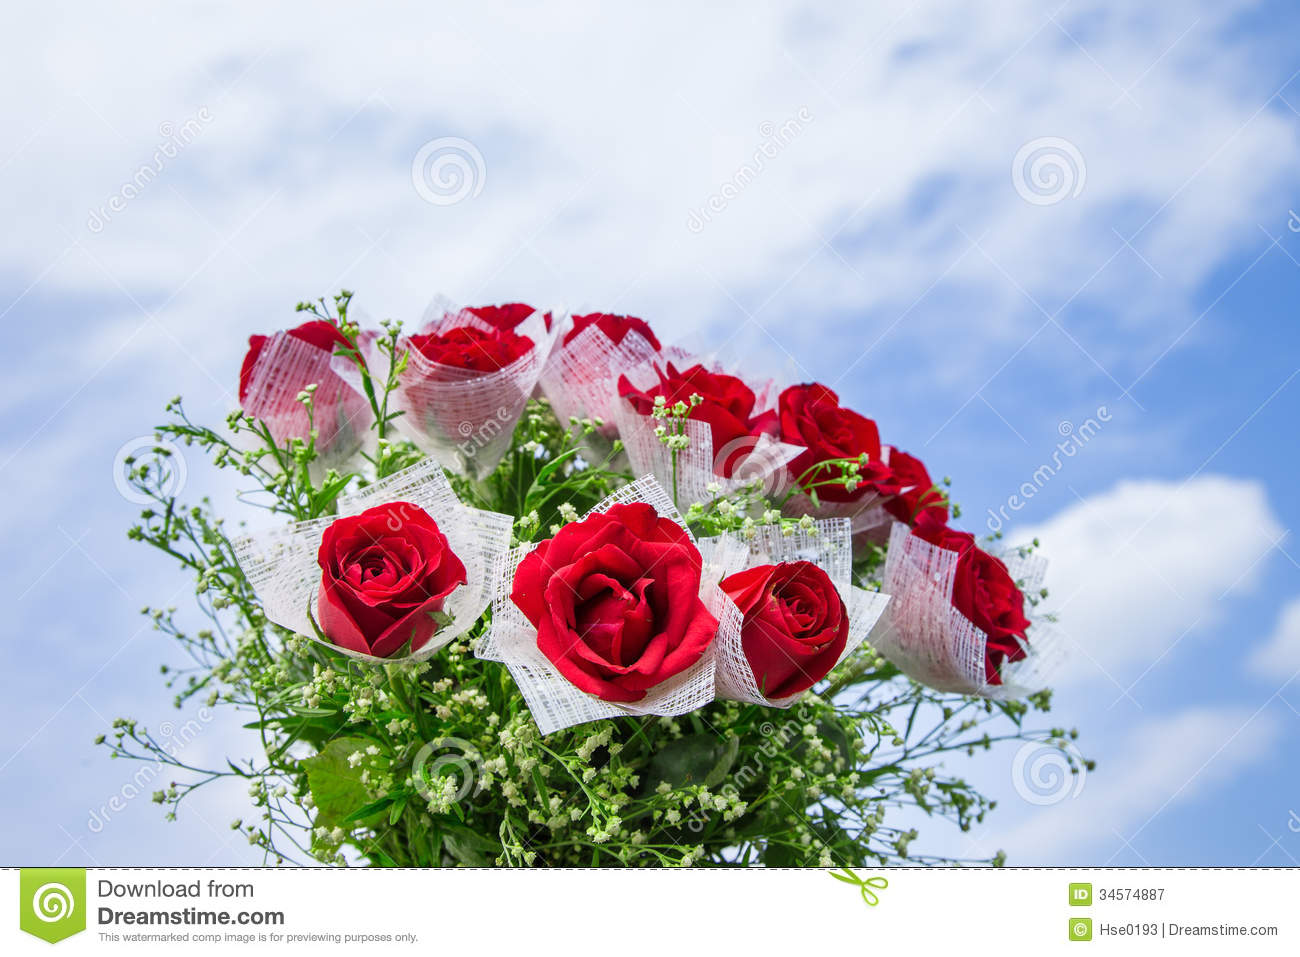 Bunch of flowers images download clipart stock Bunch of flowers images download - ClipartFest clipart stock